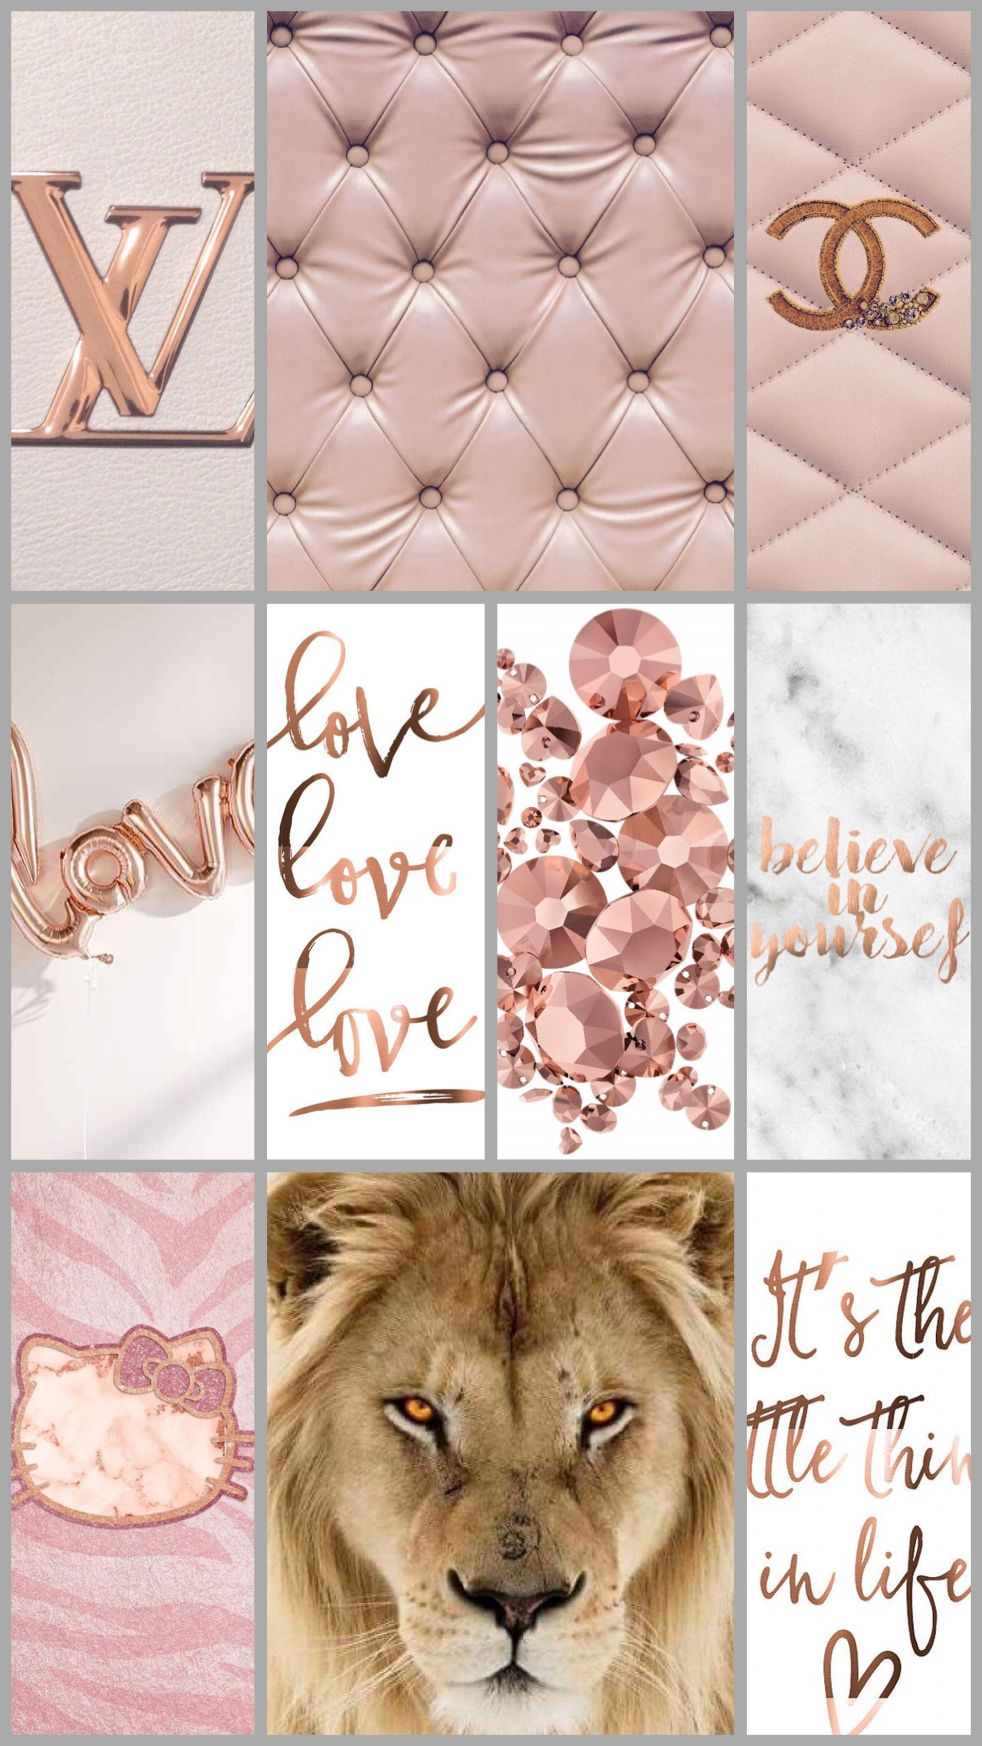 Iphone 6 Wall Made By Me Rose Gold Wallpaper Iphone Background